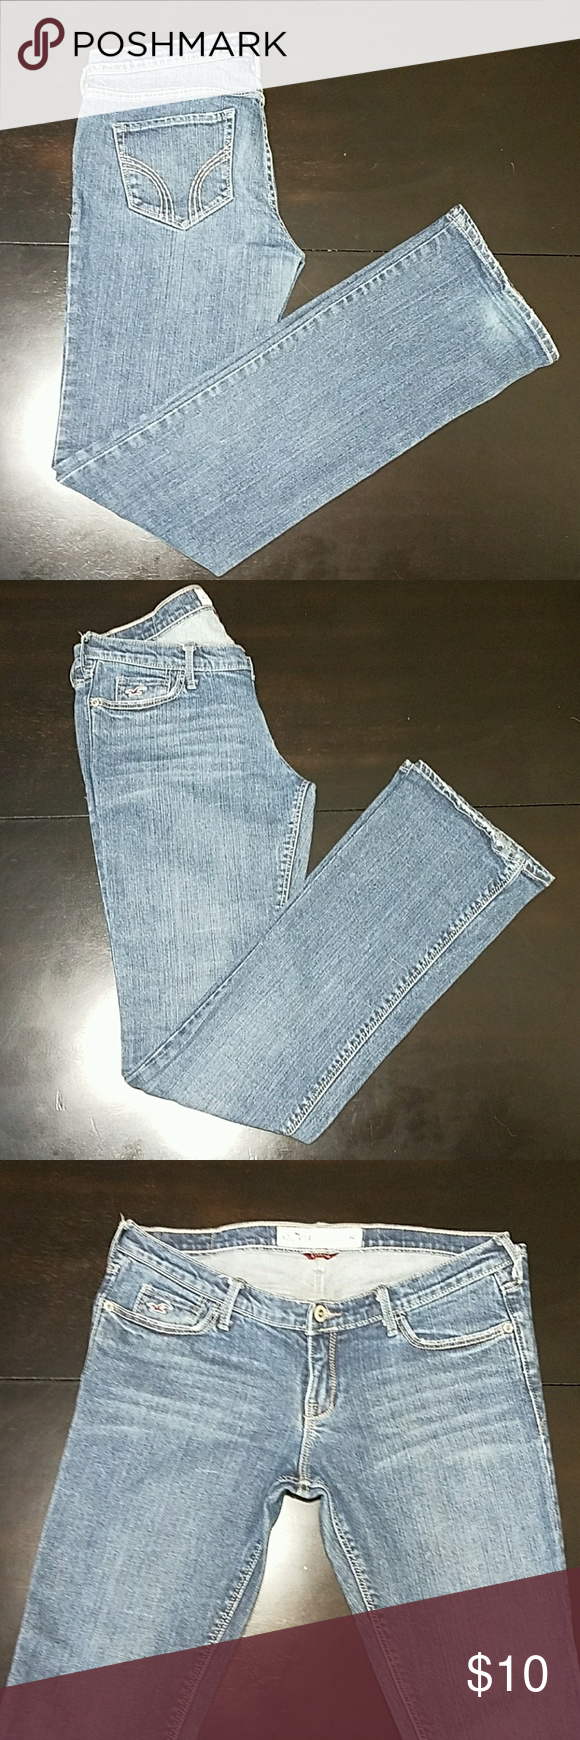 Hollister Low rise jeans Low rise, dark blue jeans, stretch, straight leg, size 5 regular Hollister Jeans Straight Leg